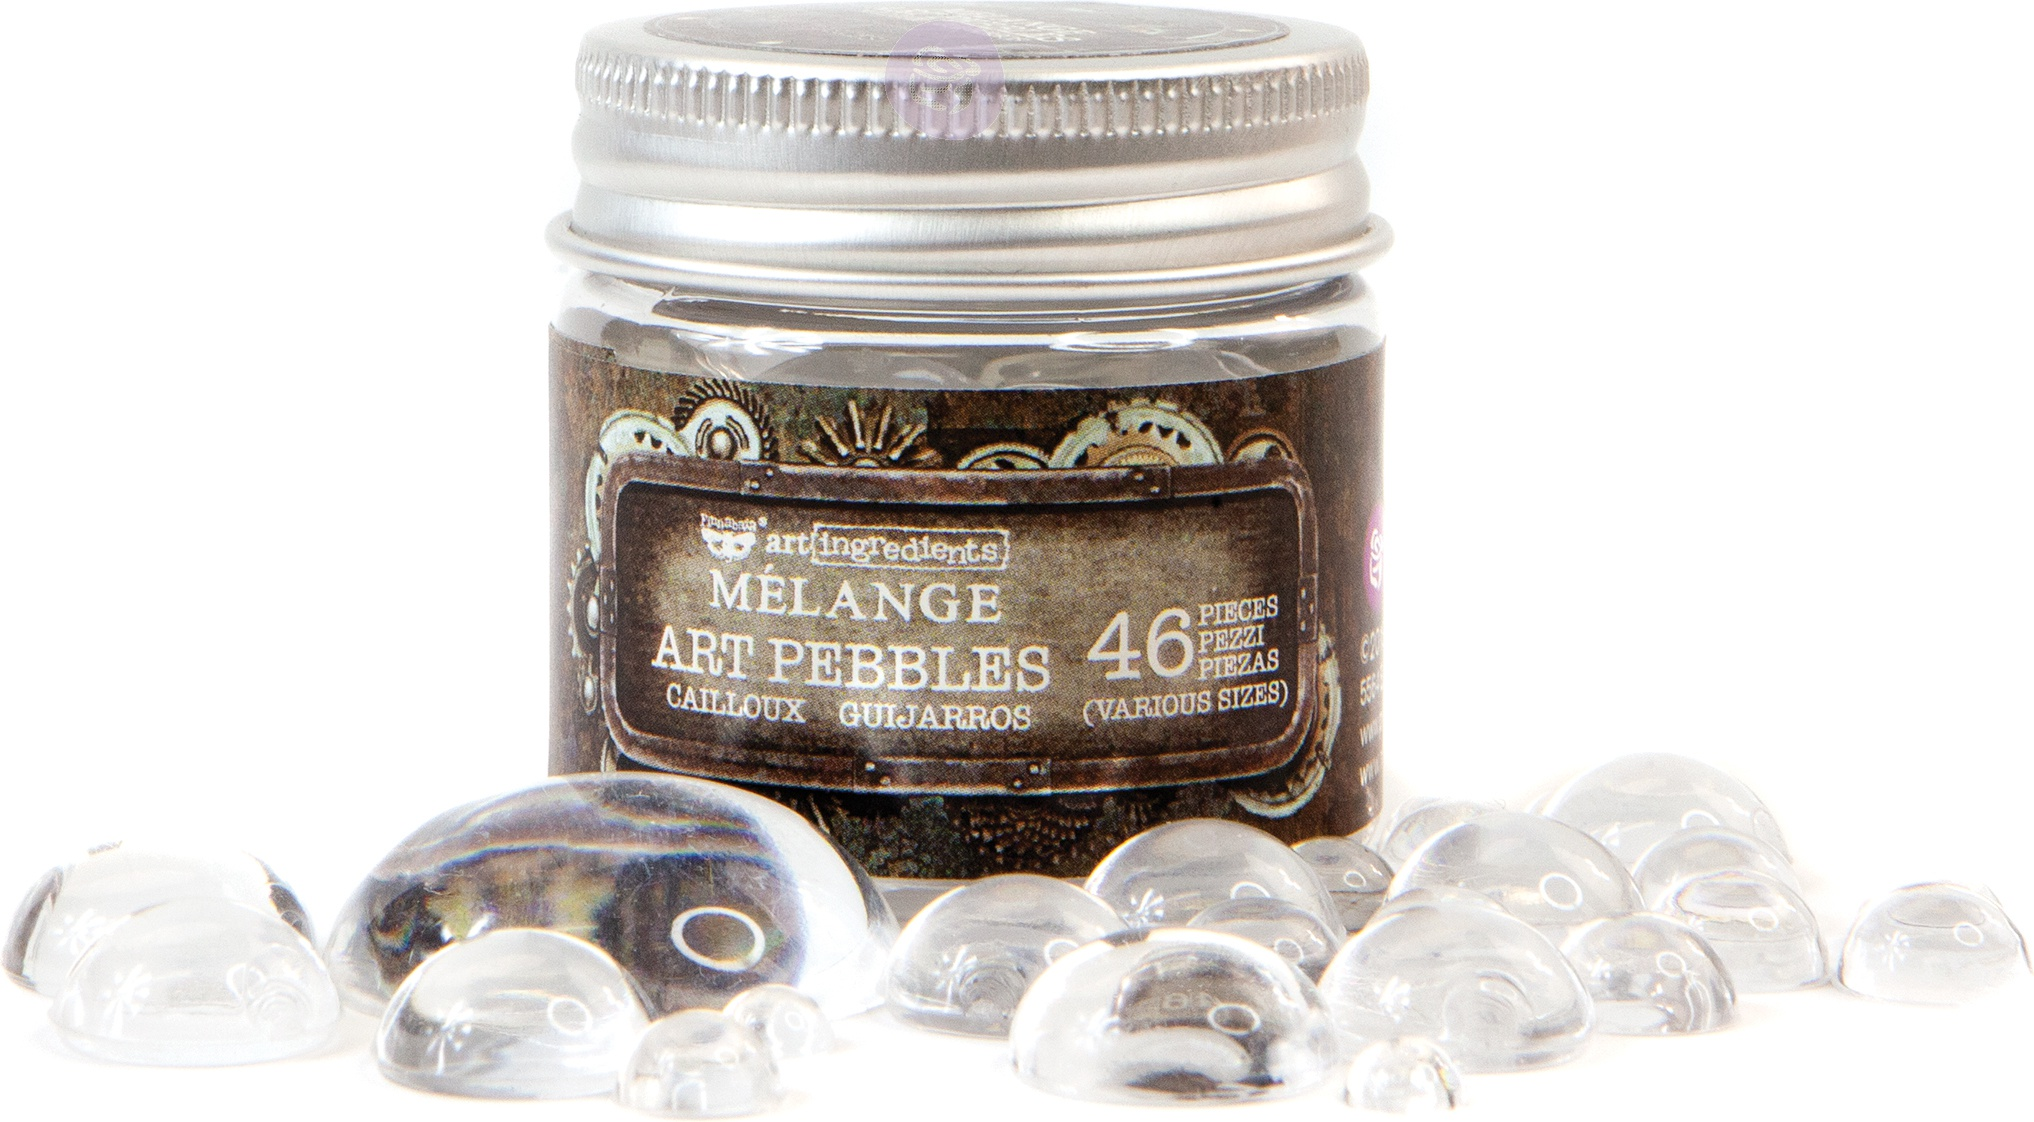 Finnabair Art Ingredients Melange Art Pebbles 46/Pkg-Assorted Sizes